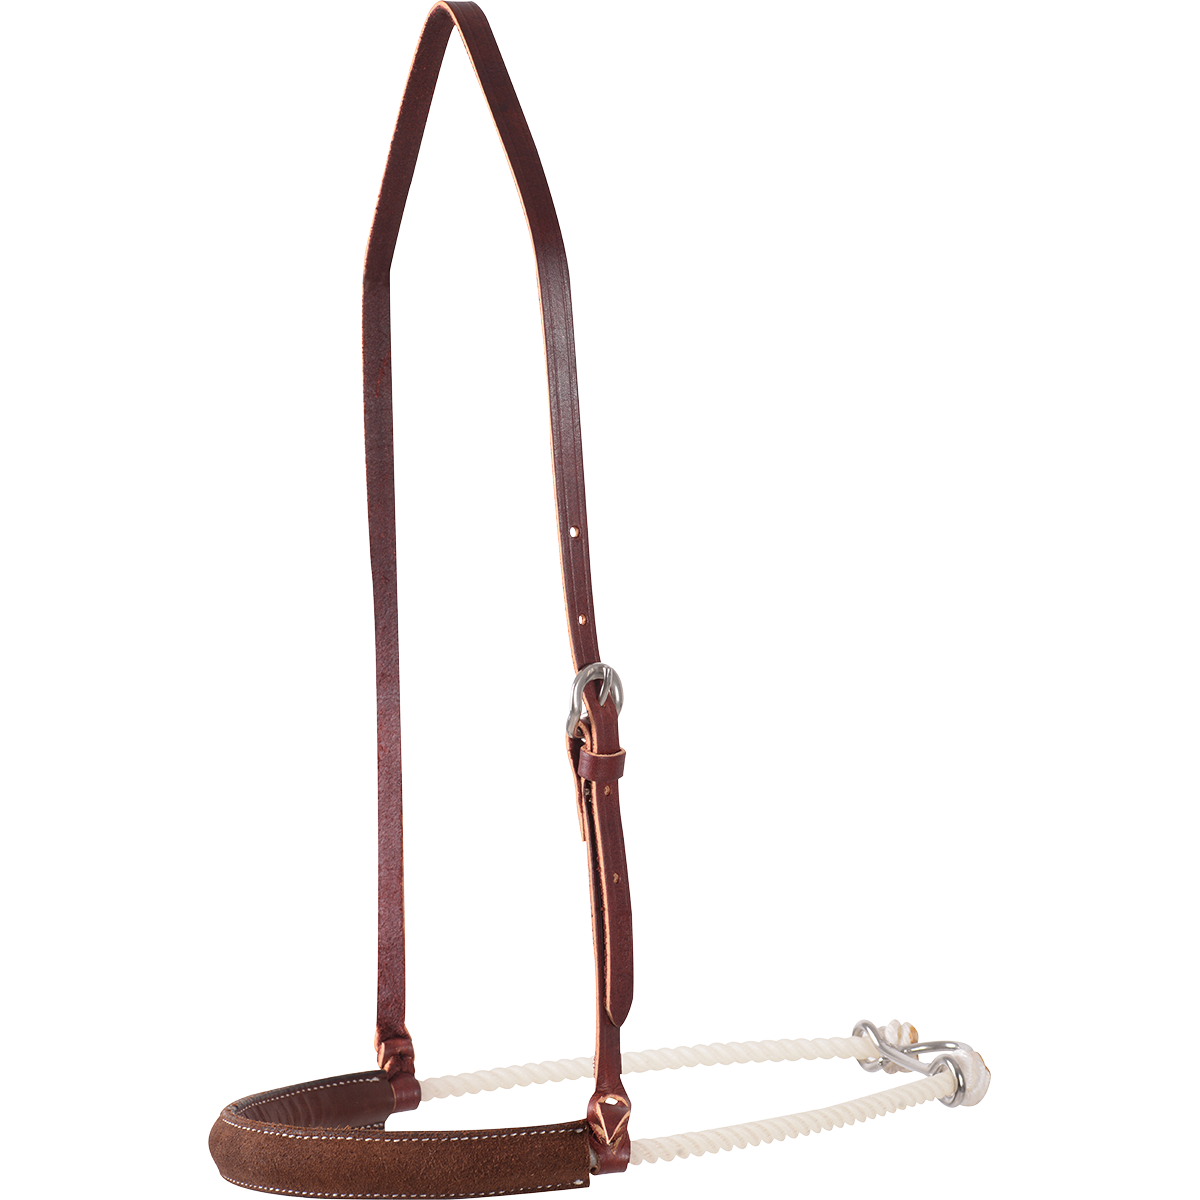 MARTIN SADDLERY CHOCOLATE ROUGHOUT NOSEBAND Tack - Nosebands & Tie Downs Martin Saddlery Teskeys